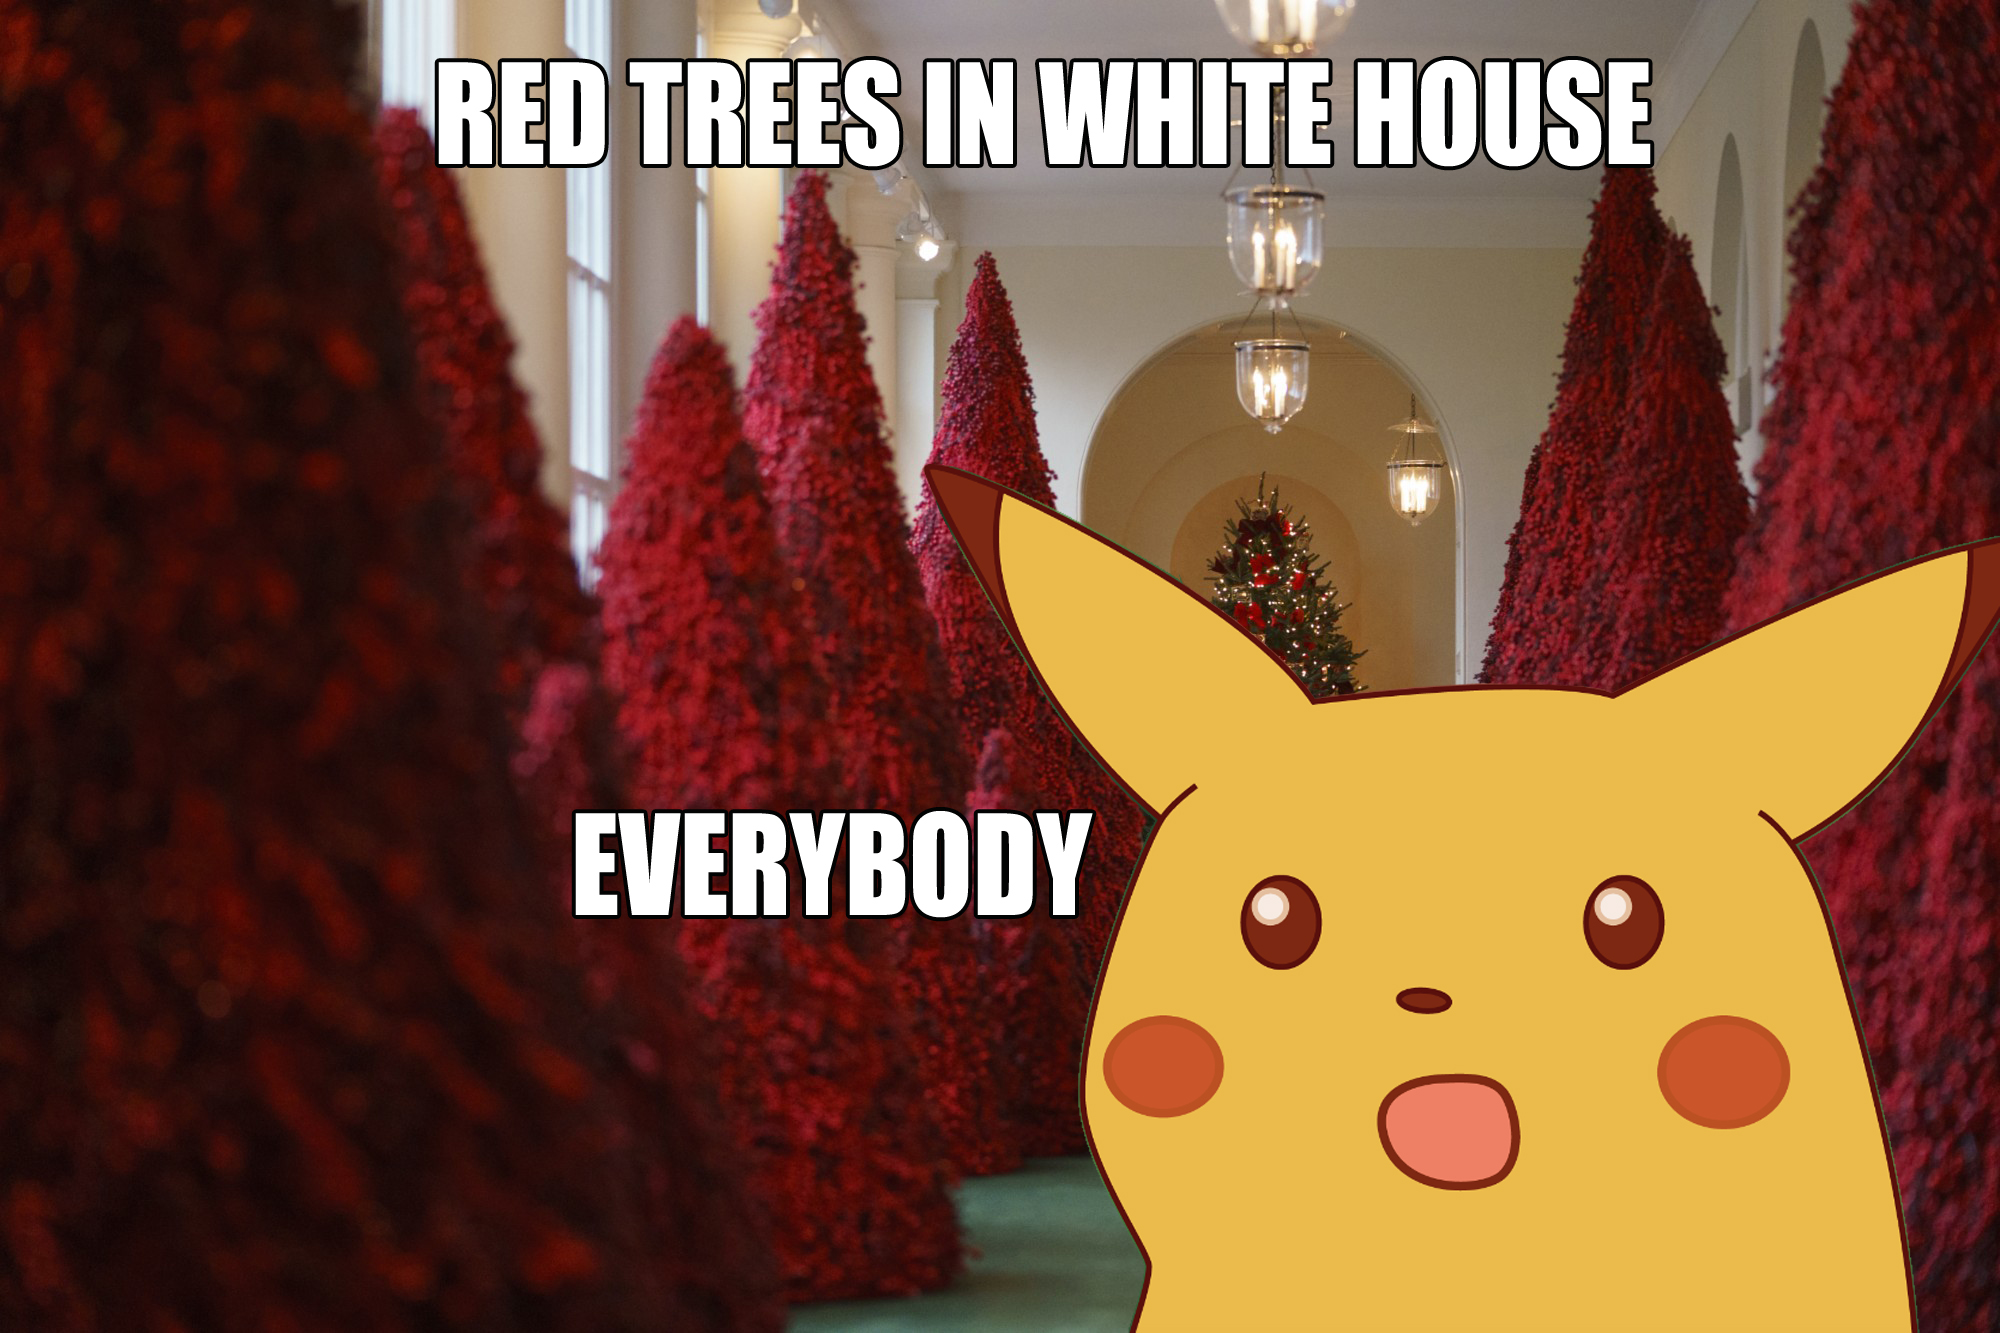 The trees are red